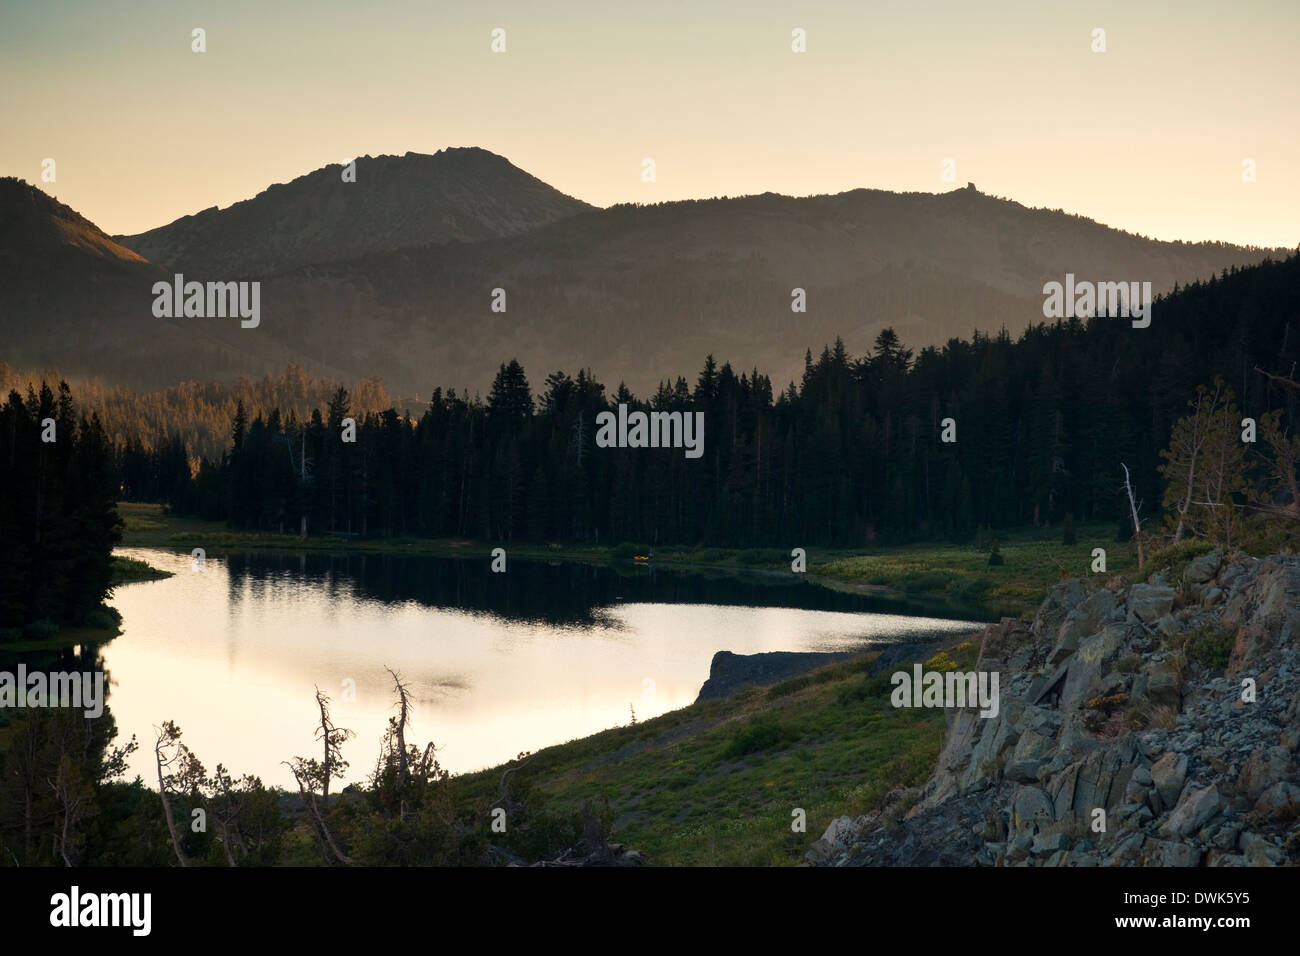 Highland Lake, Stanislaus National Forest. Alpine County, California - Stock Image